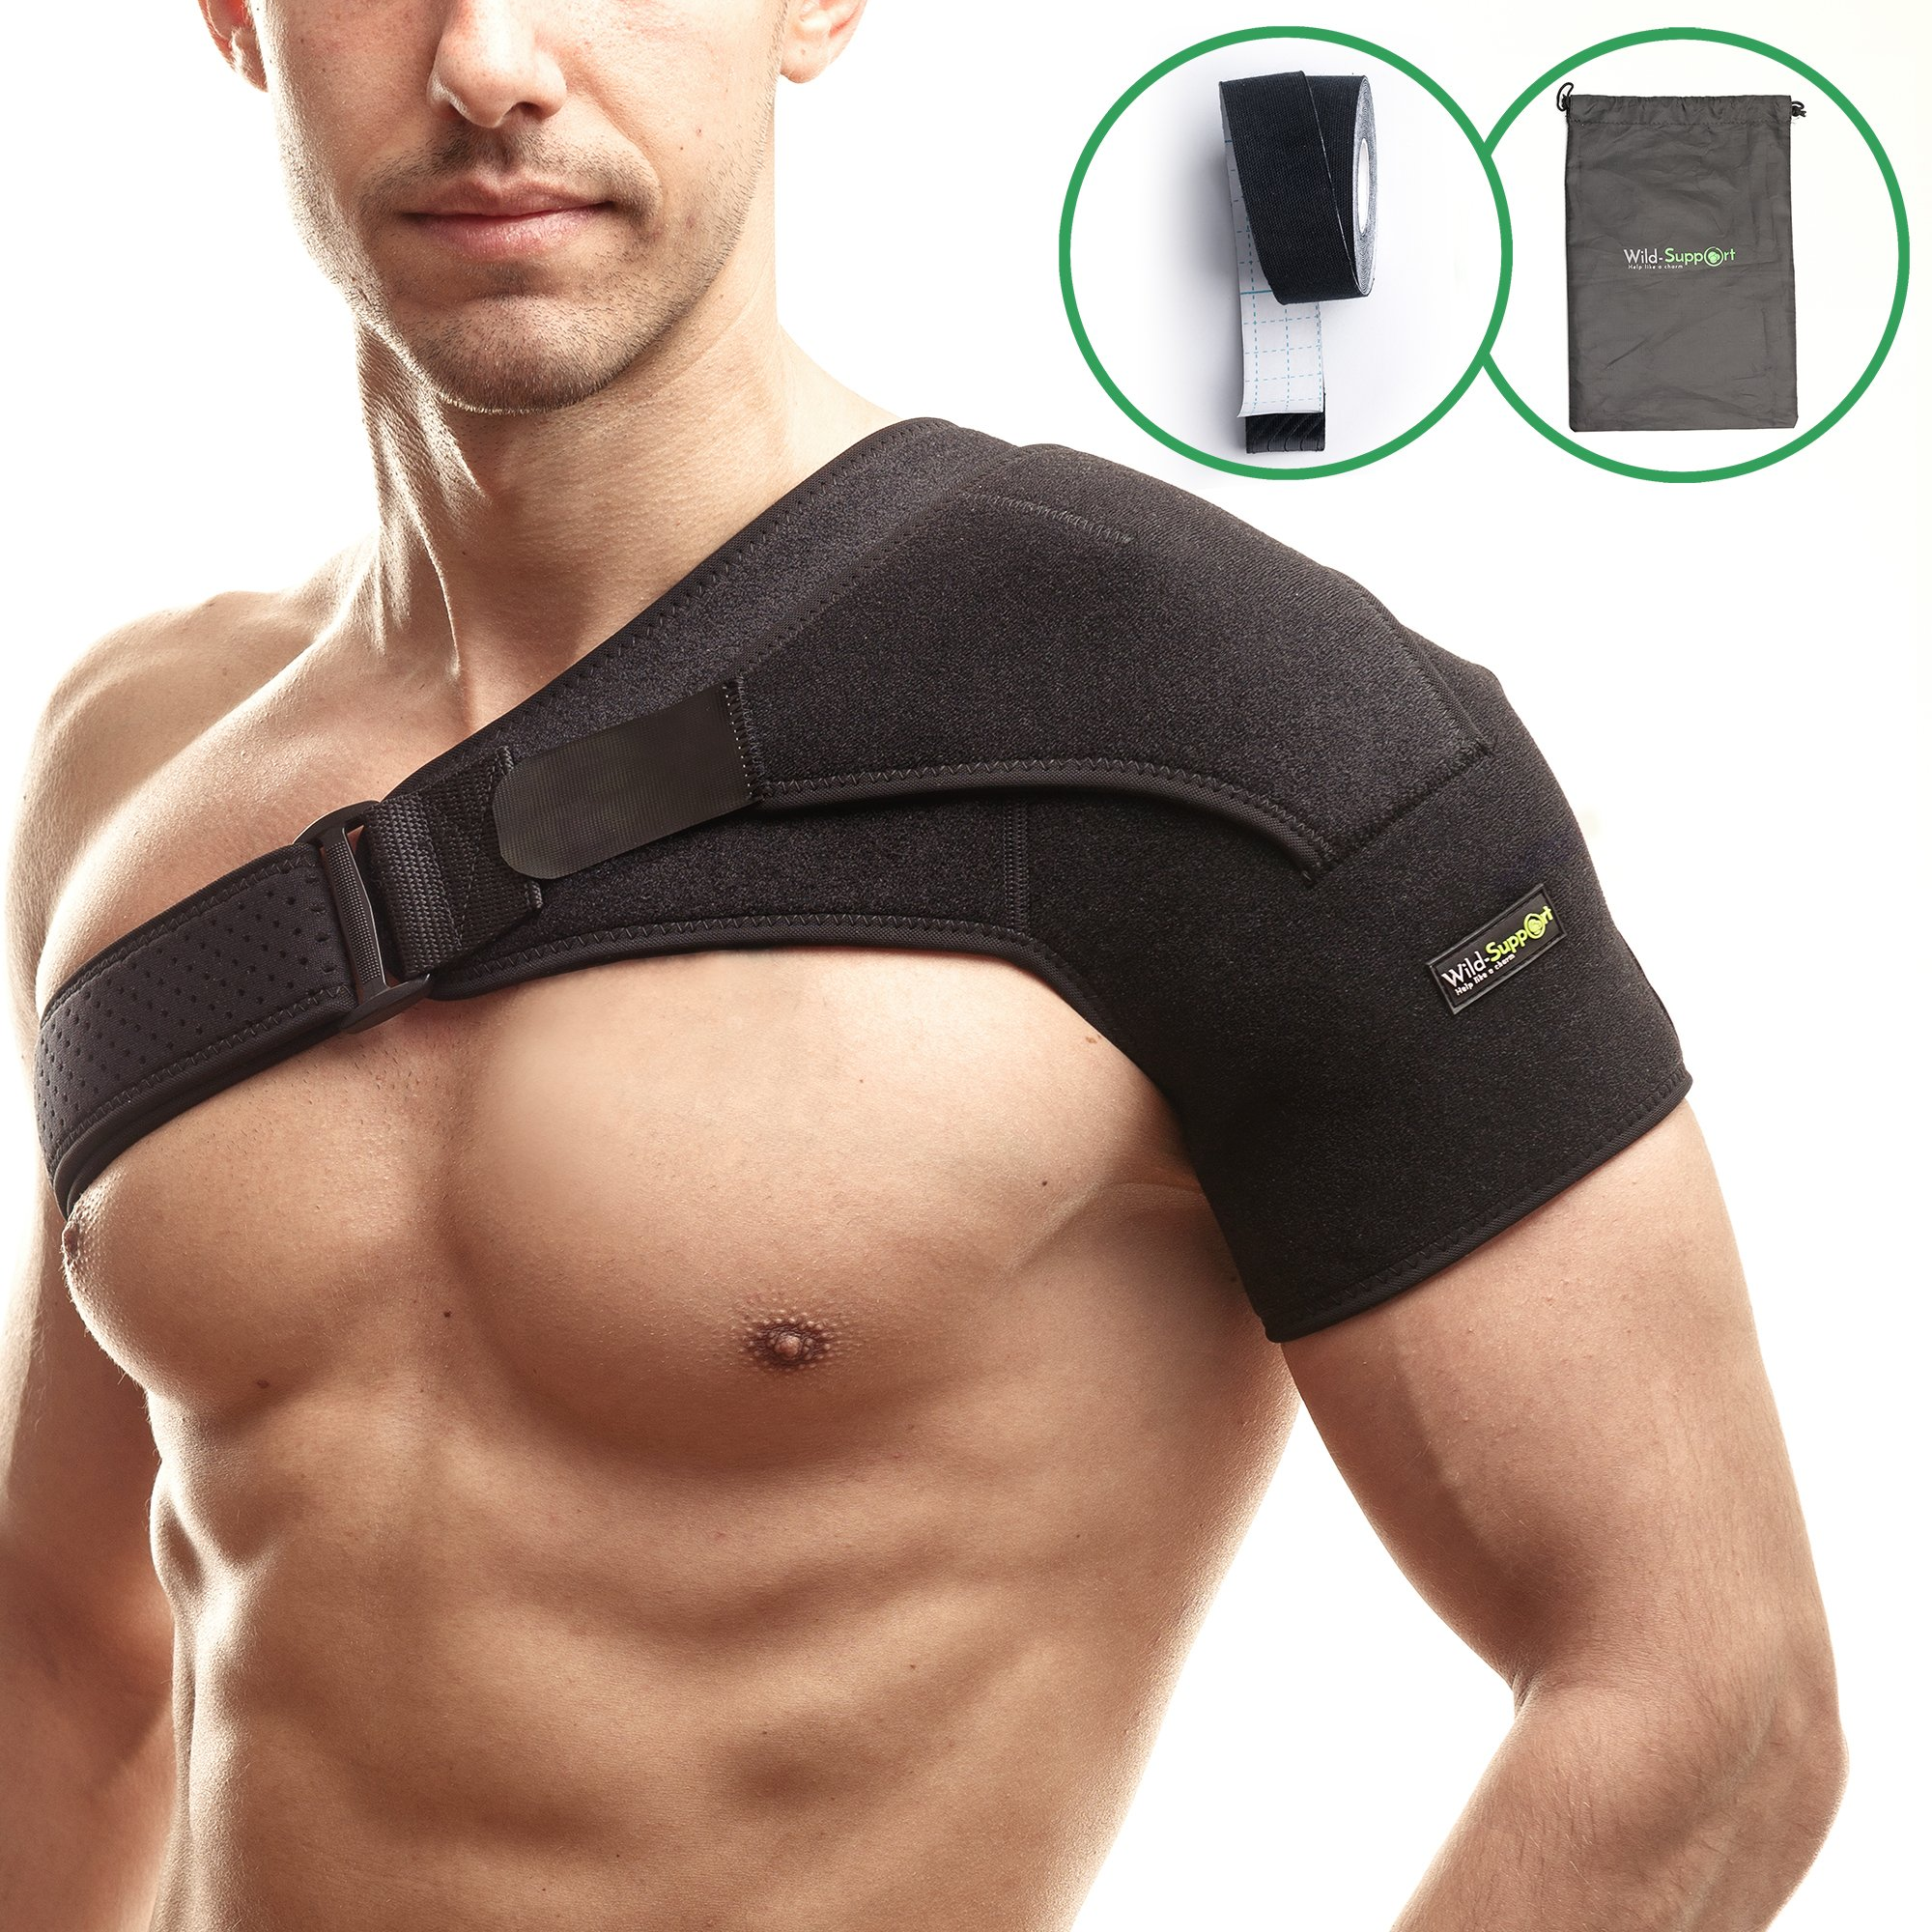 Shoulder Support Brace with Pressure Pad for Rotator Cuff - High Quality Breathable Neoprene Shoulder Wrap – Adjustable Strap by Wild-Support (+Bonus: Kinesiology Tape, Bag, eBook and User Guide)